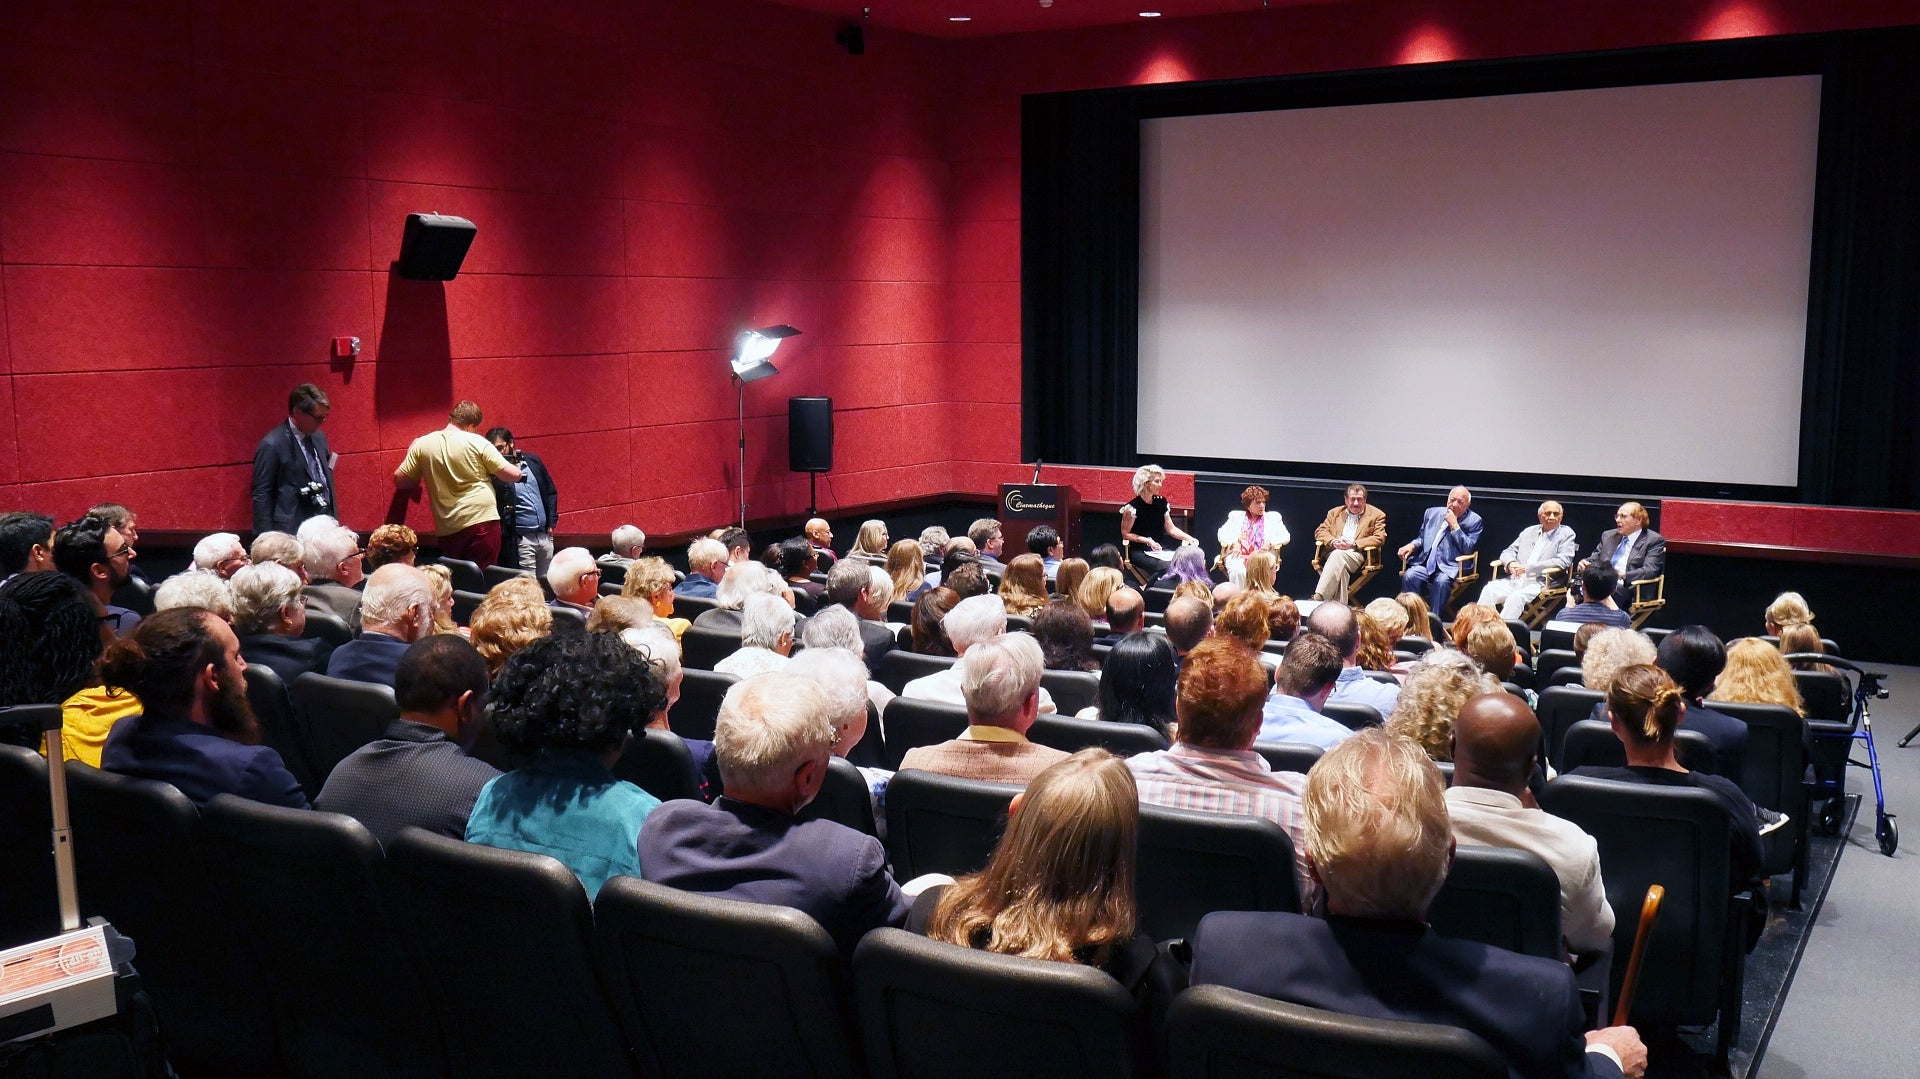 General view of the HFPA event at CSUN